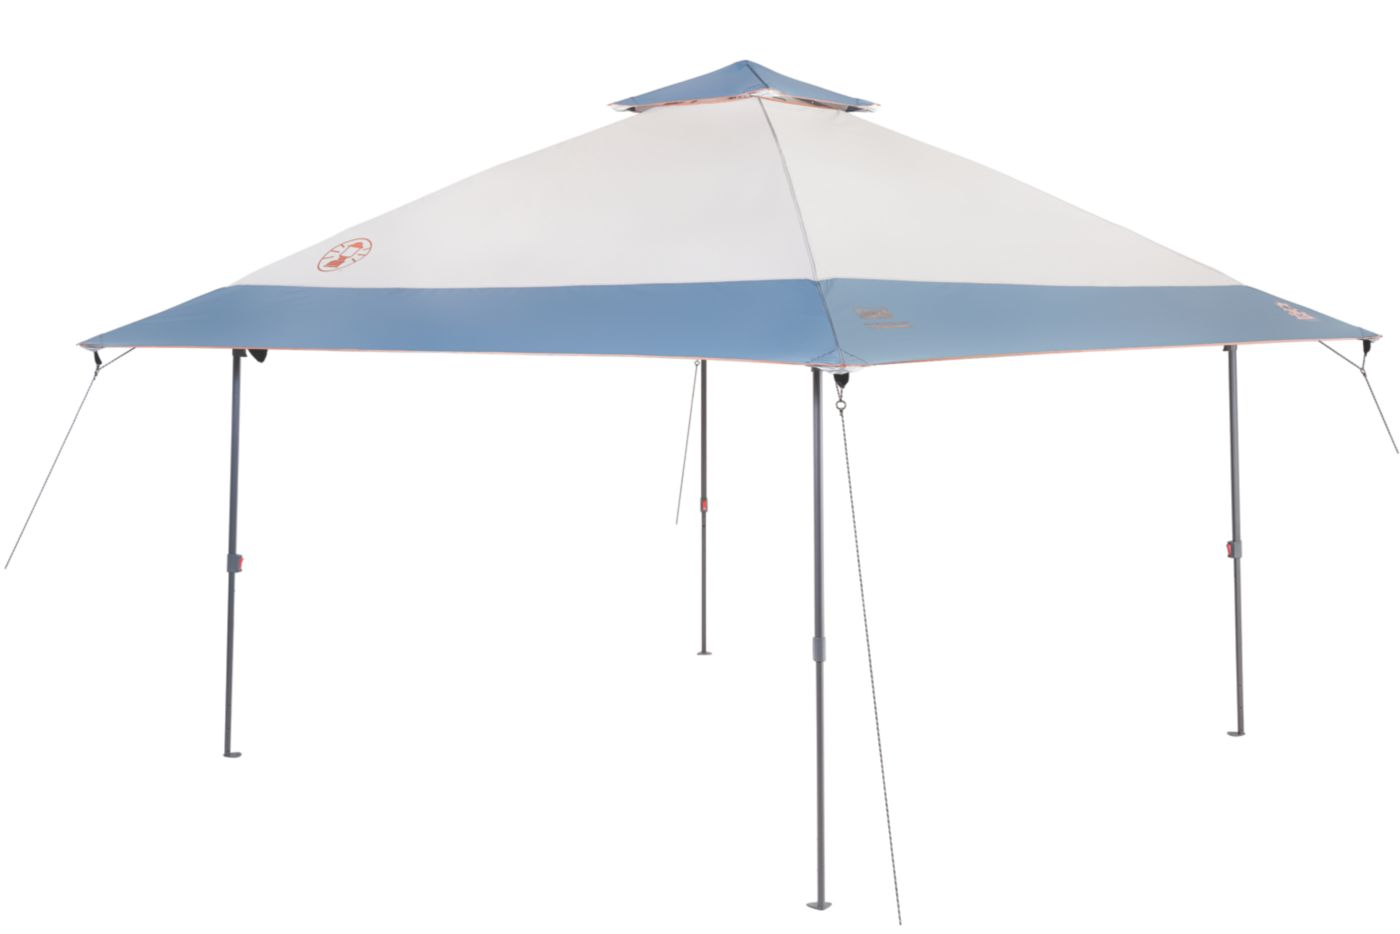 All Night™ 13 x 13 Instant Lighted Eaved Shelter  sc 1 st  Coleman & Coleman Canopies | Shade Tents | Coleman